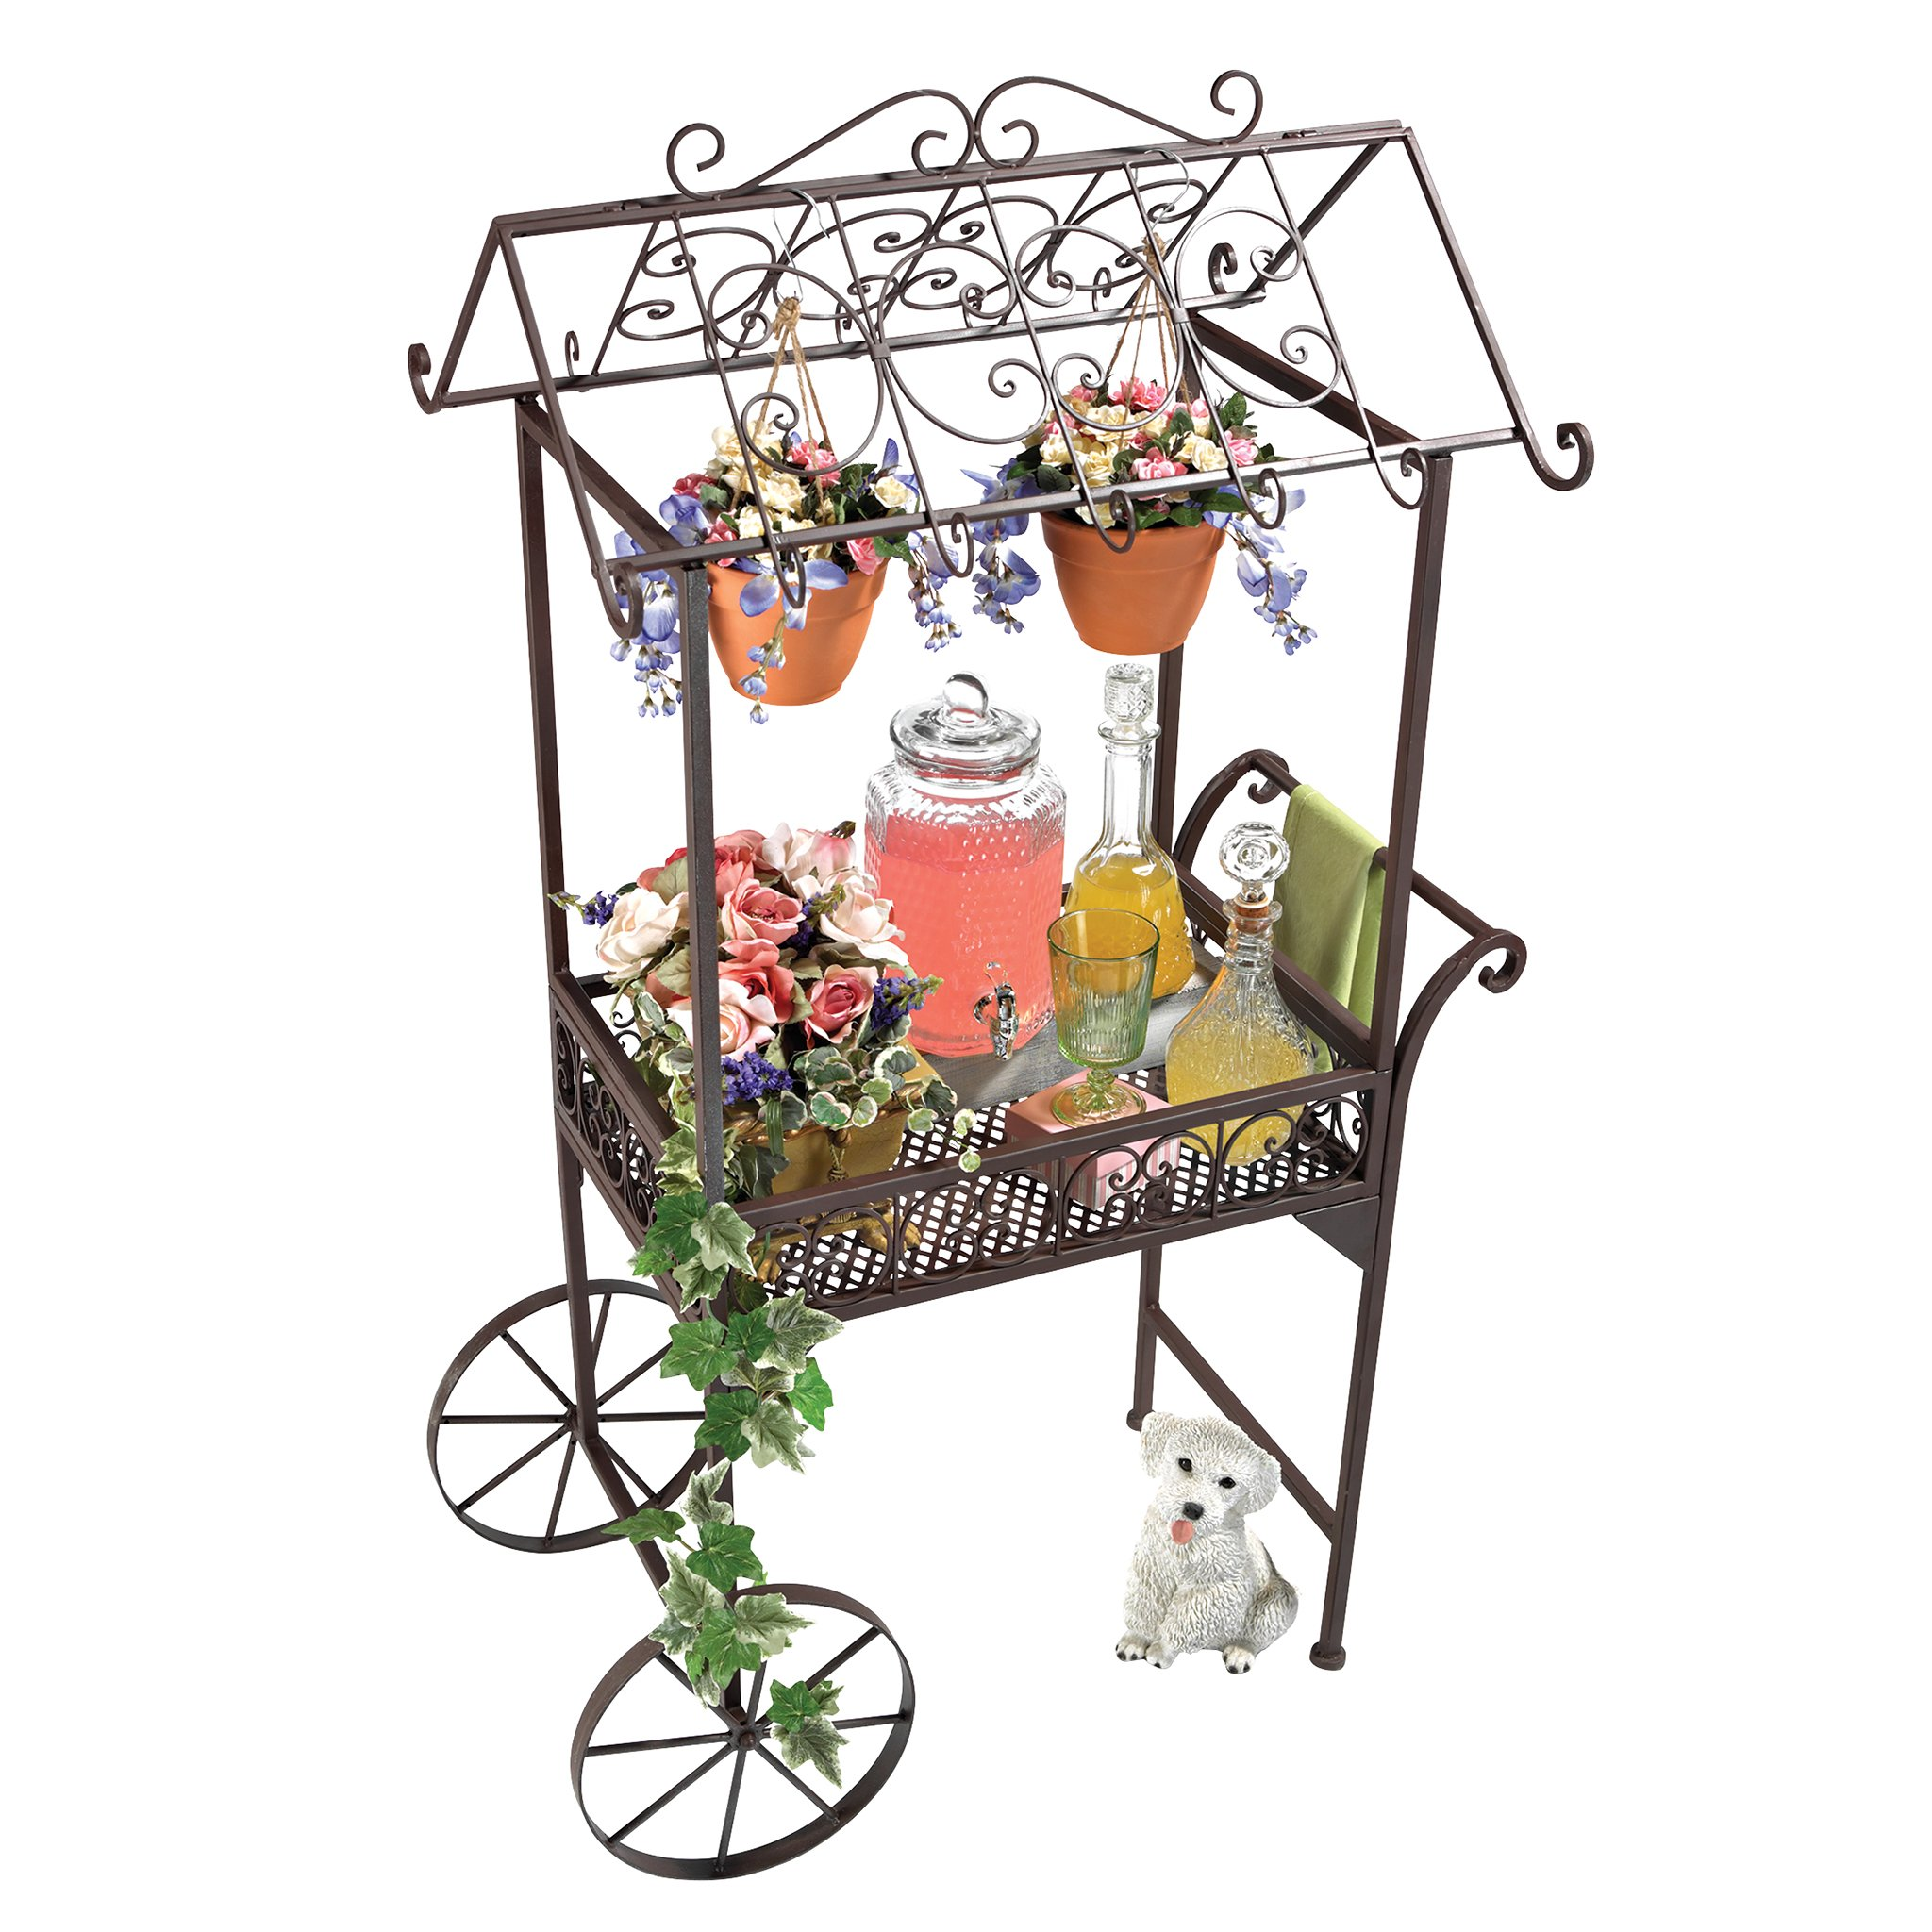 Design Toscano Jardin a la Francaise Flower Pushcart by Design Toscano